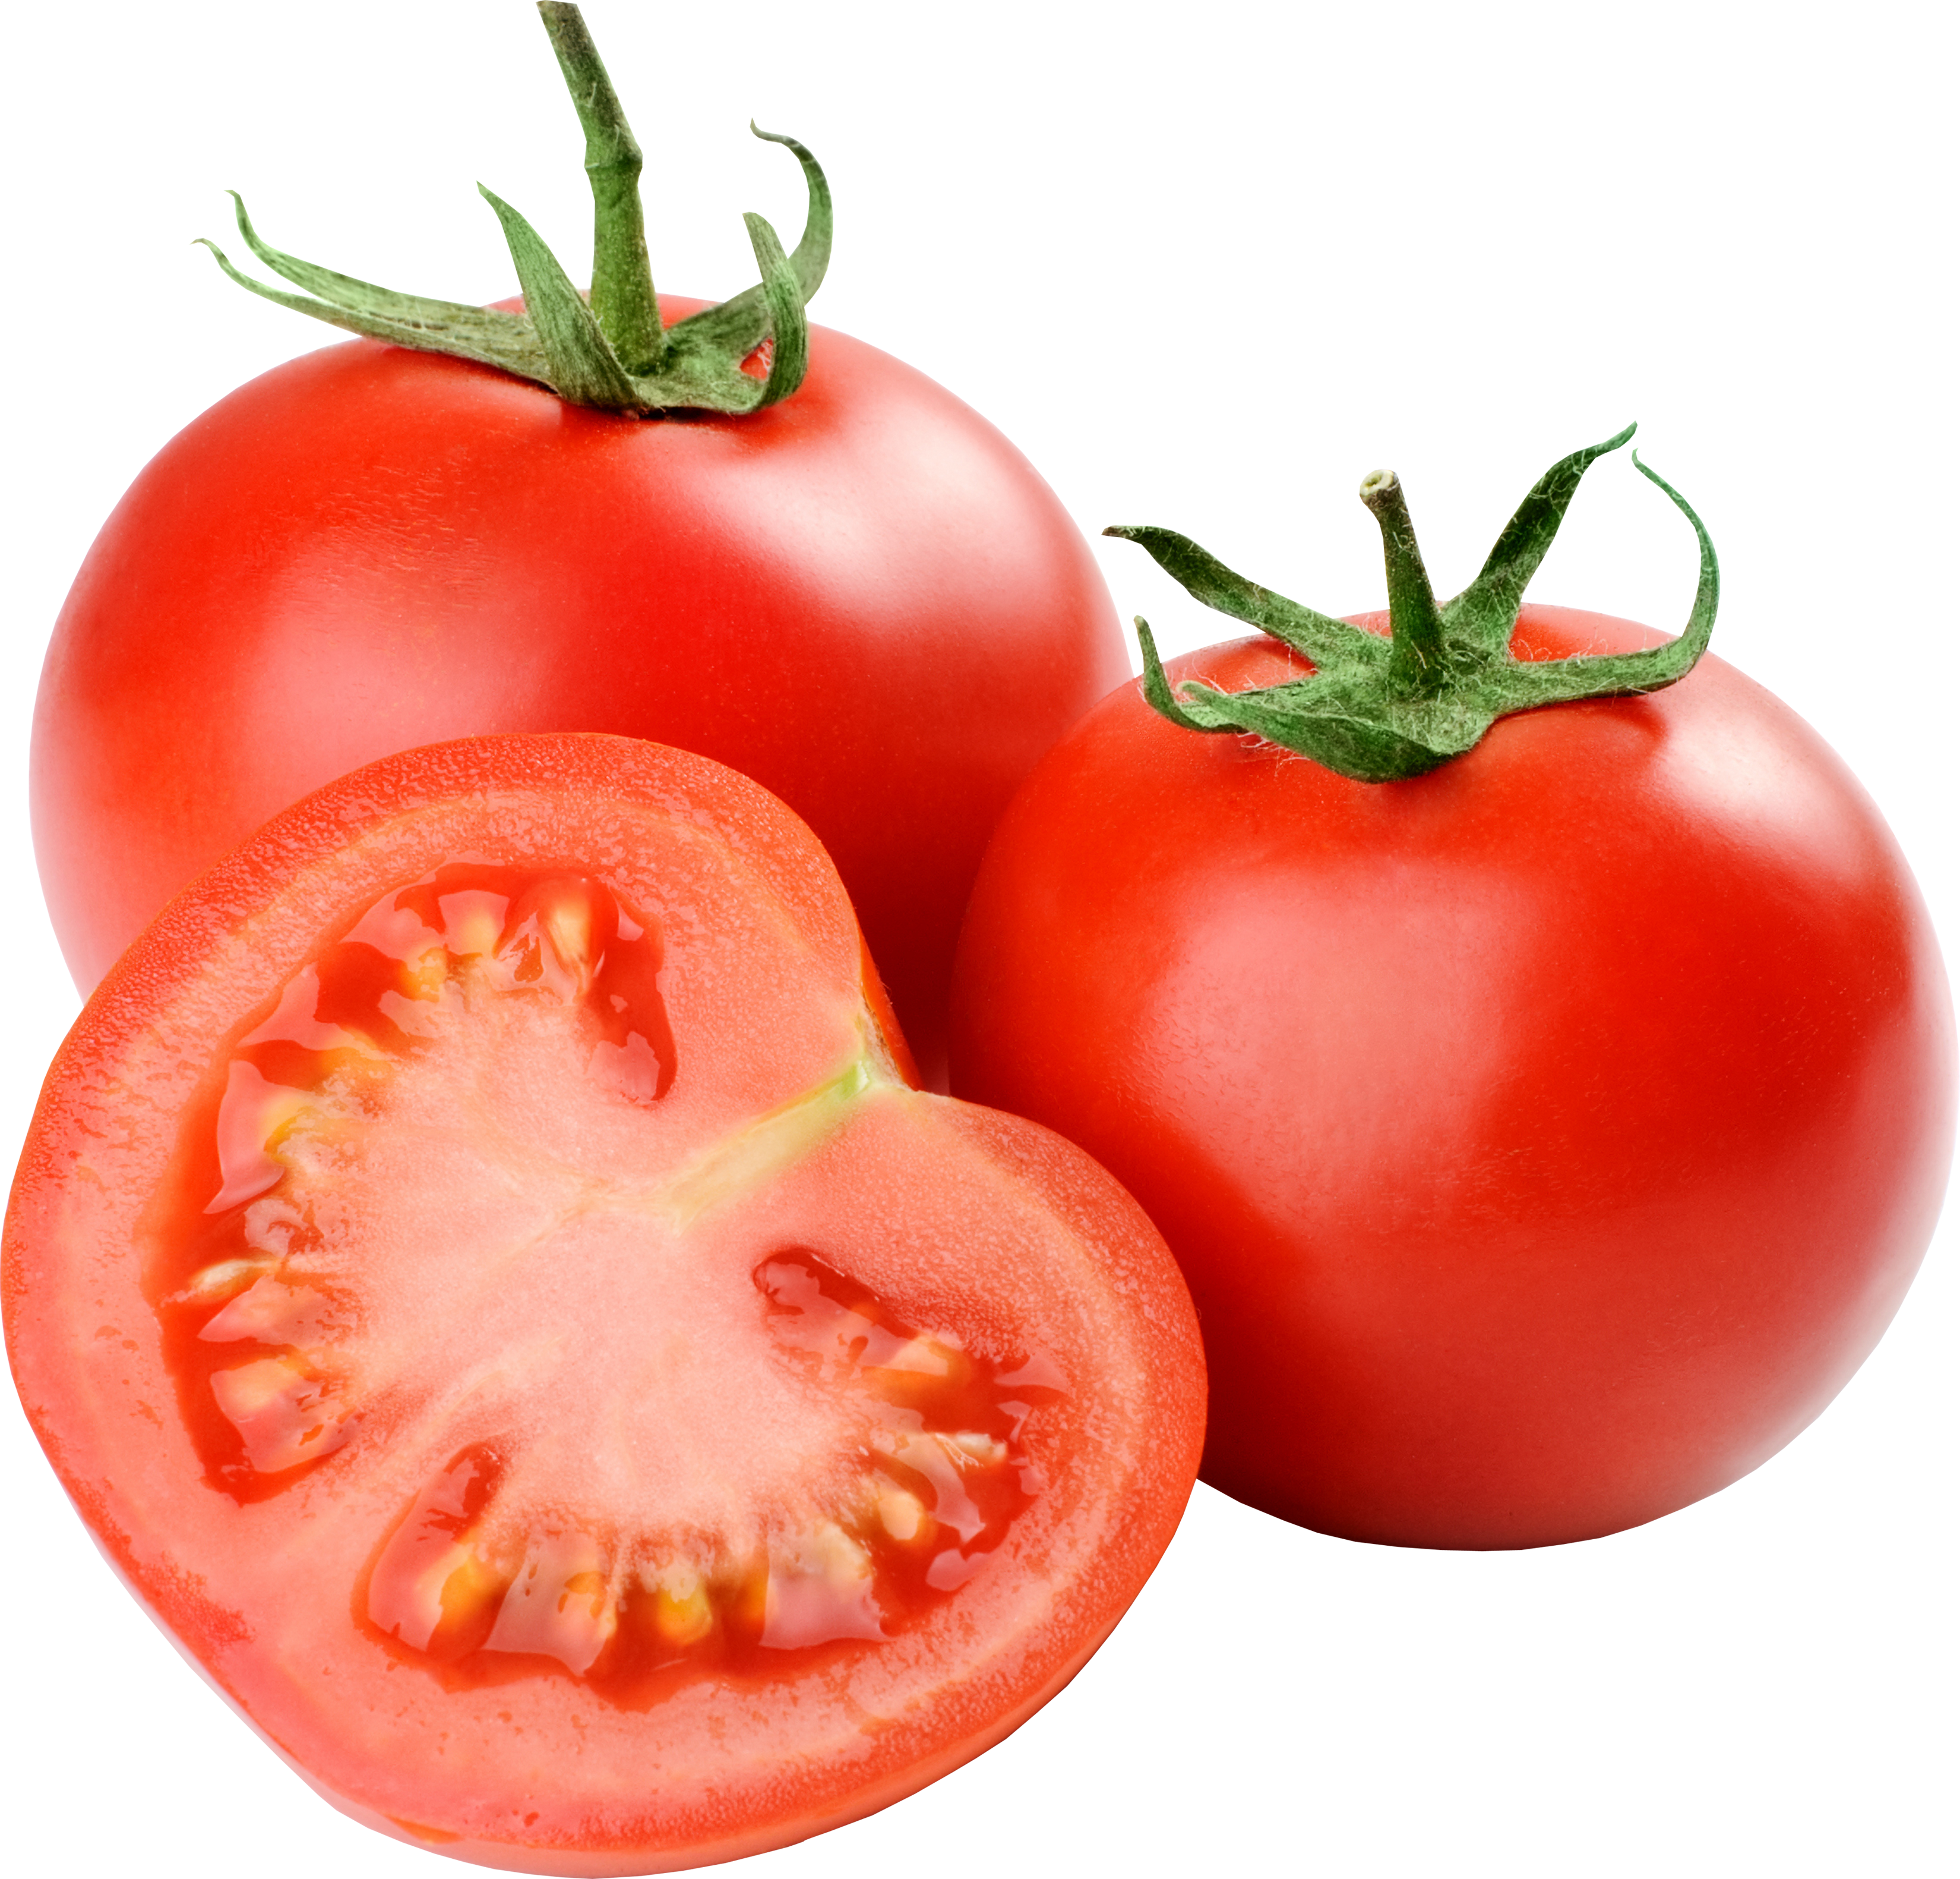 Tomato png hd transparent. Tomatoes clipart fresh